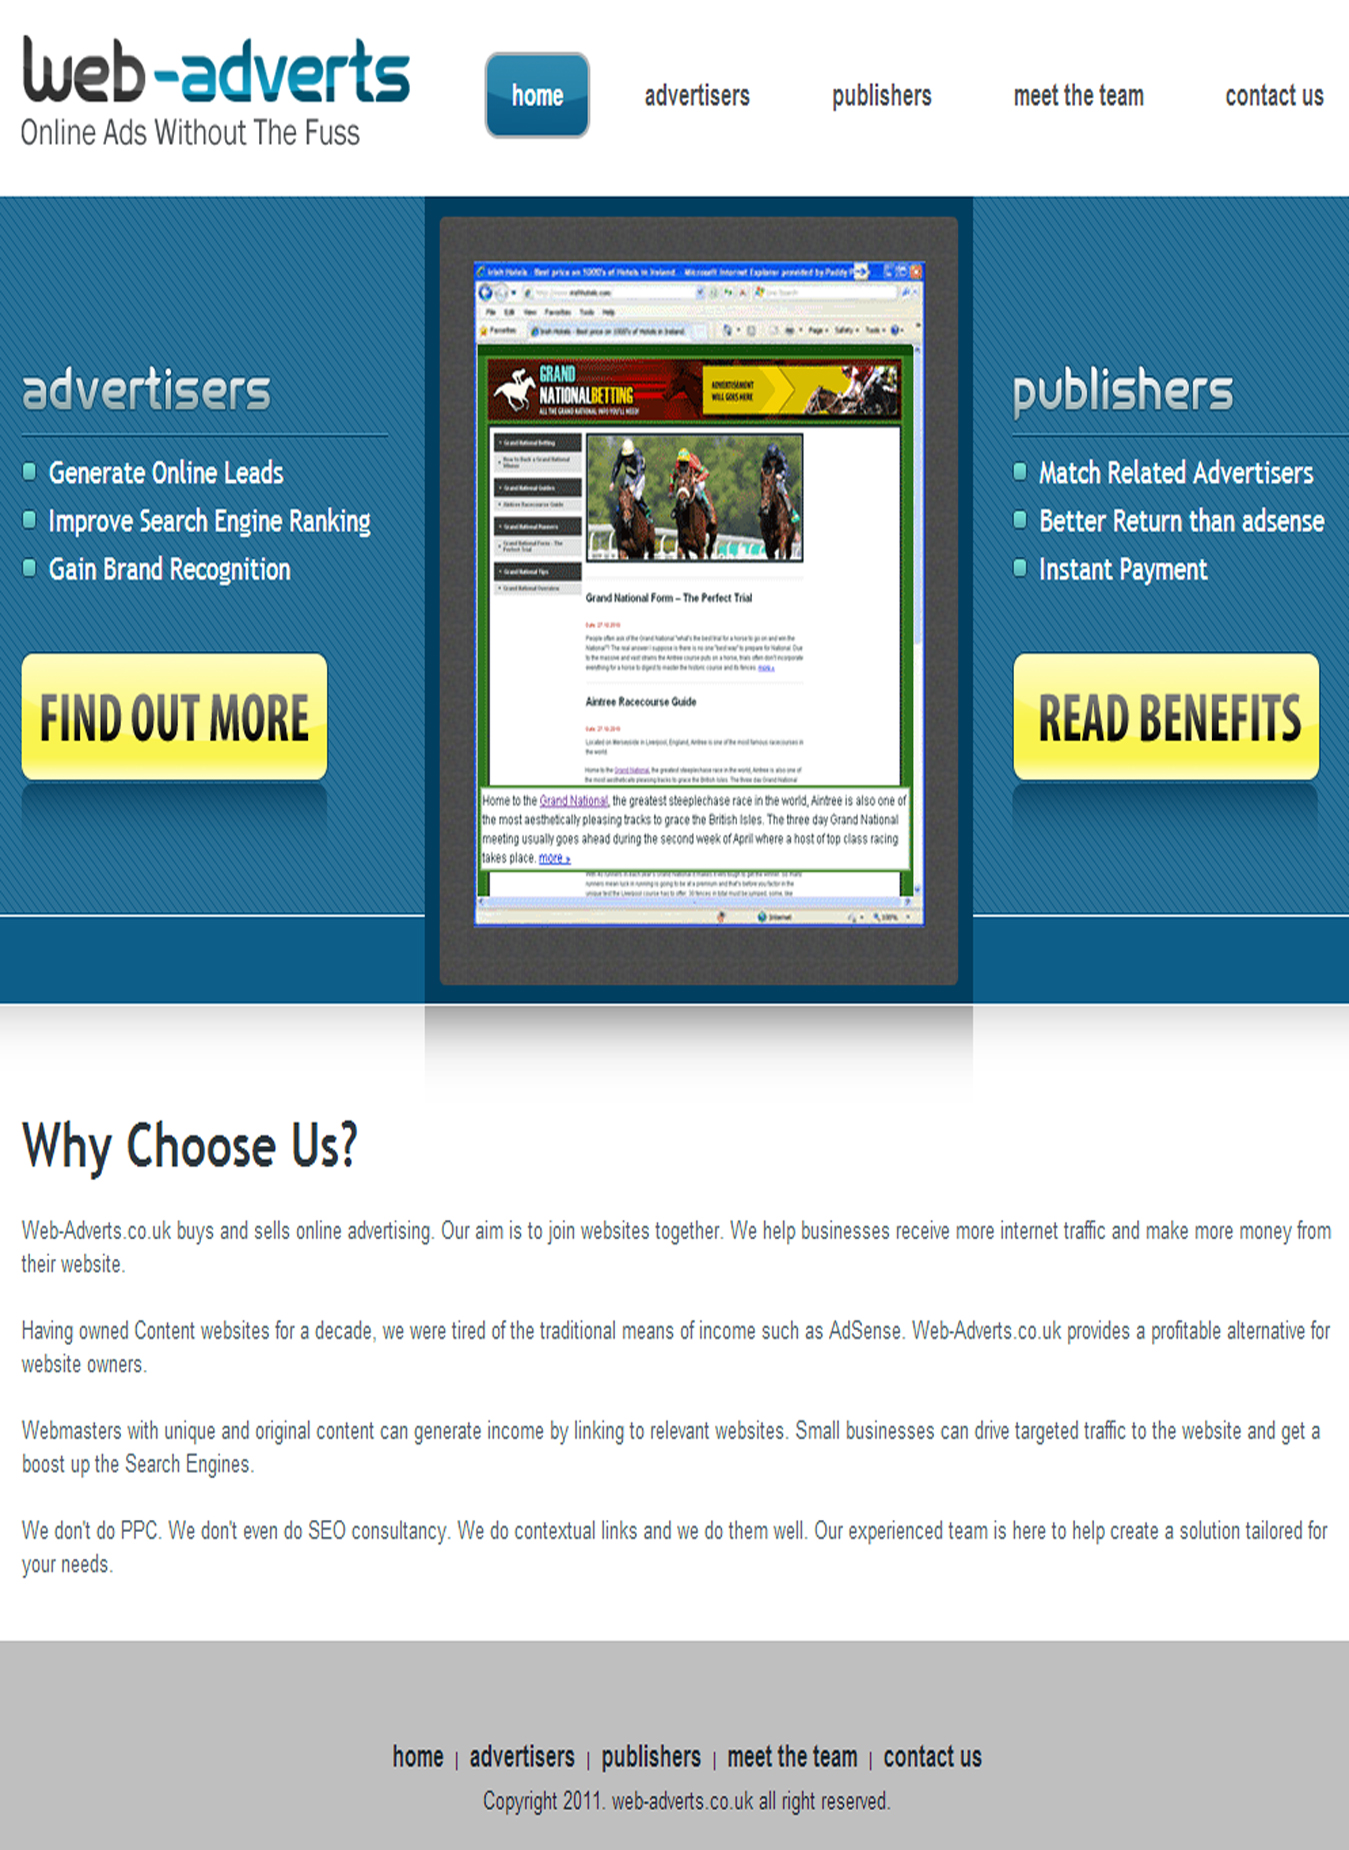 web-adverts-co-uk